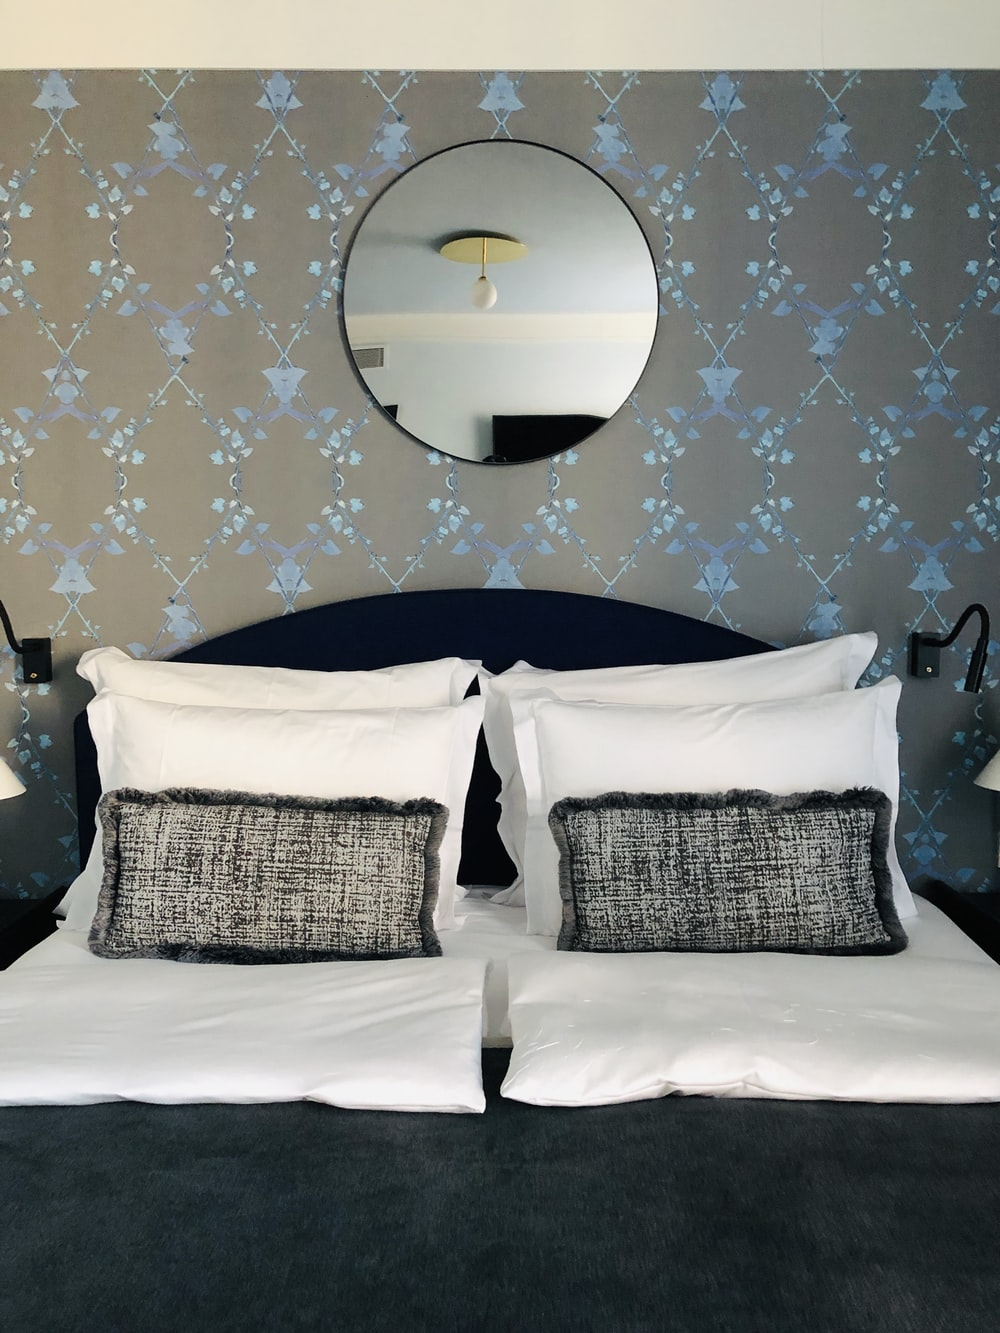 2 white wicker armchairs on white bed